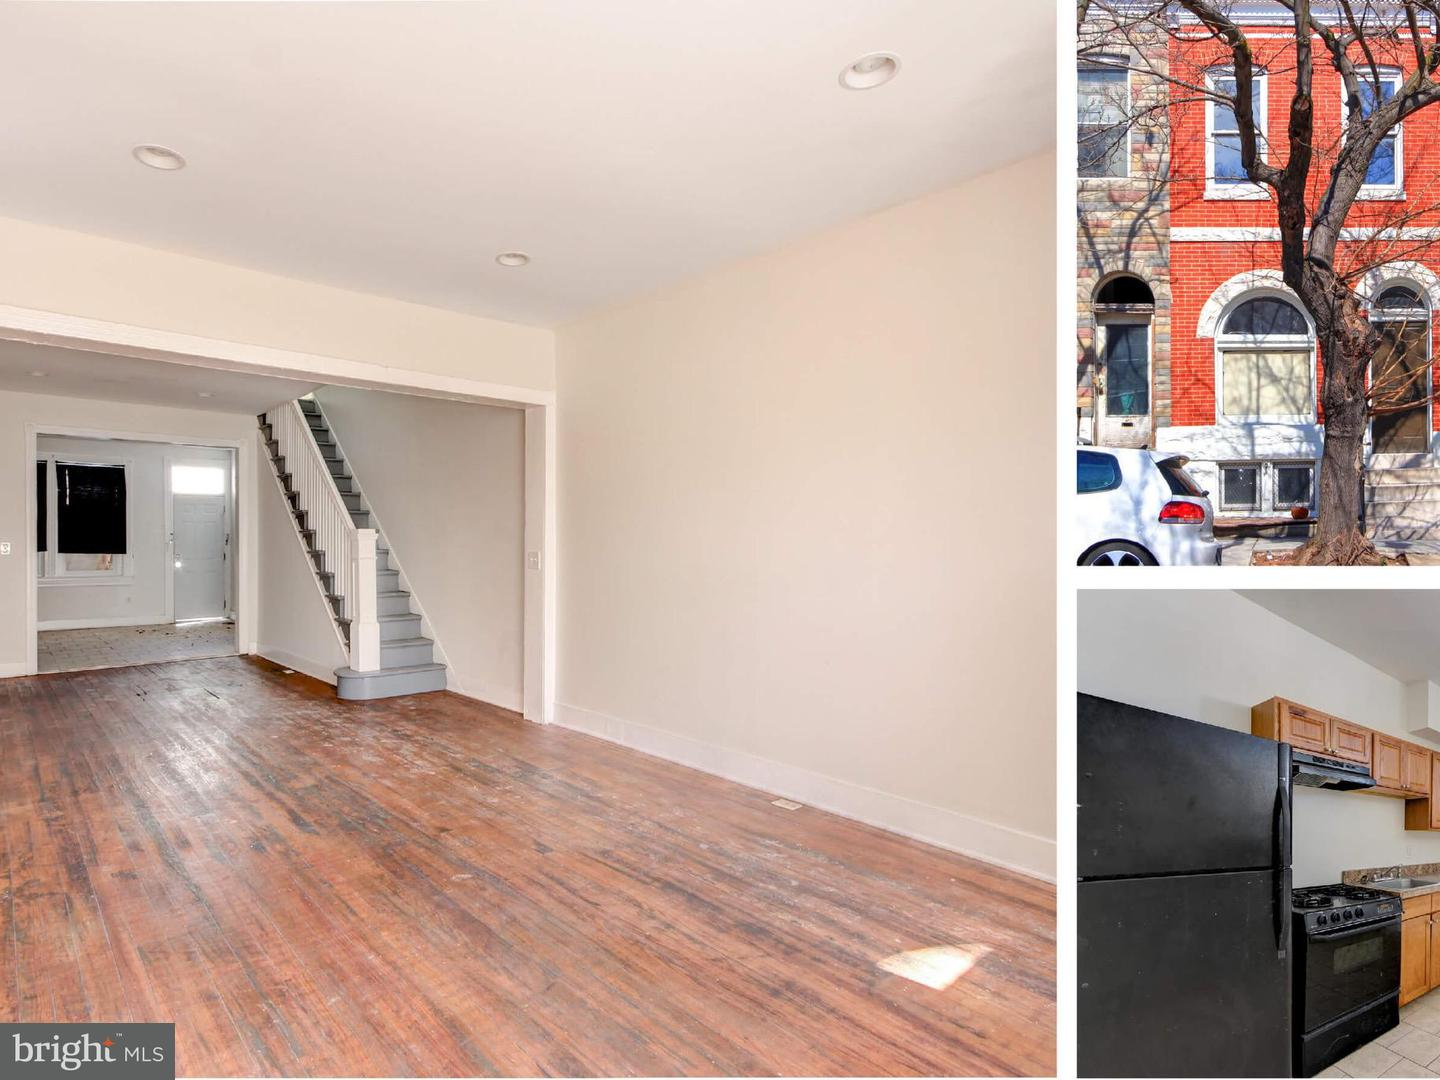 Other Residential for Rent at 1804 Lafayette Ave Baltimore, Maryland 21213 United States